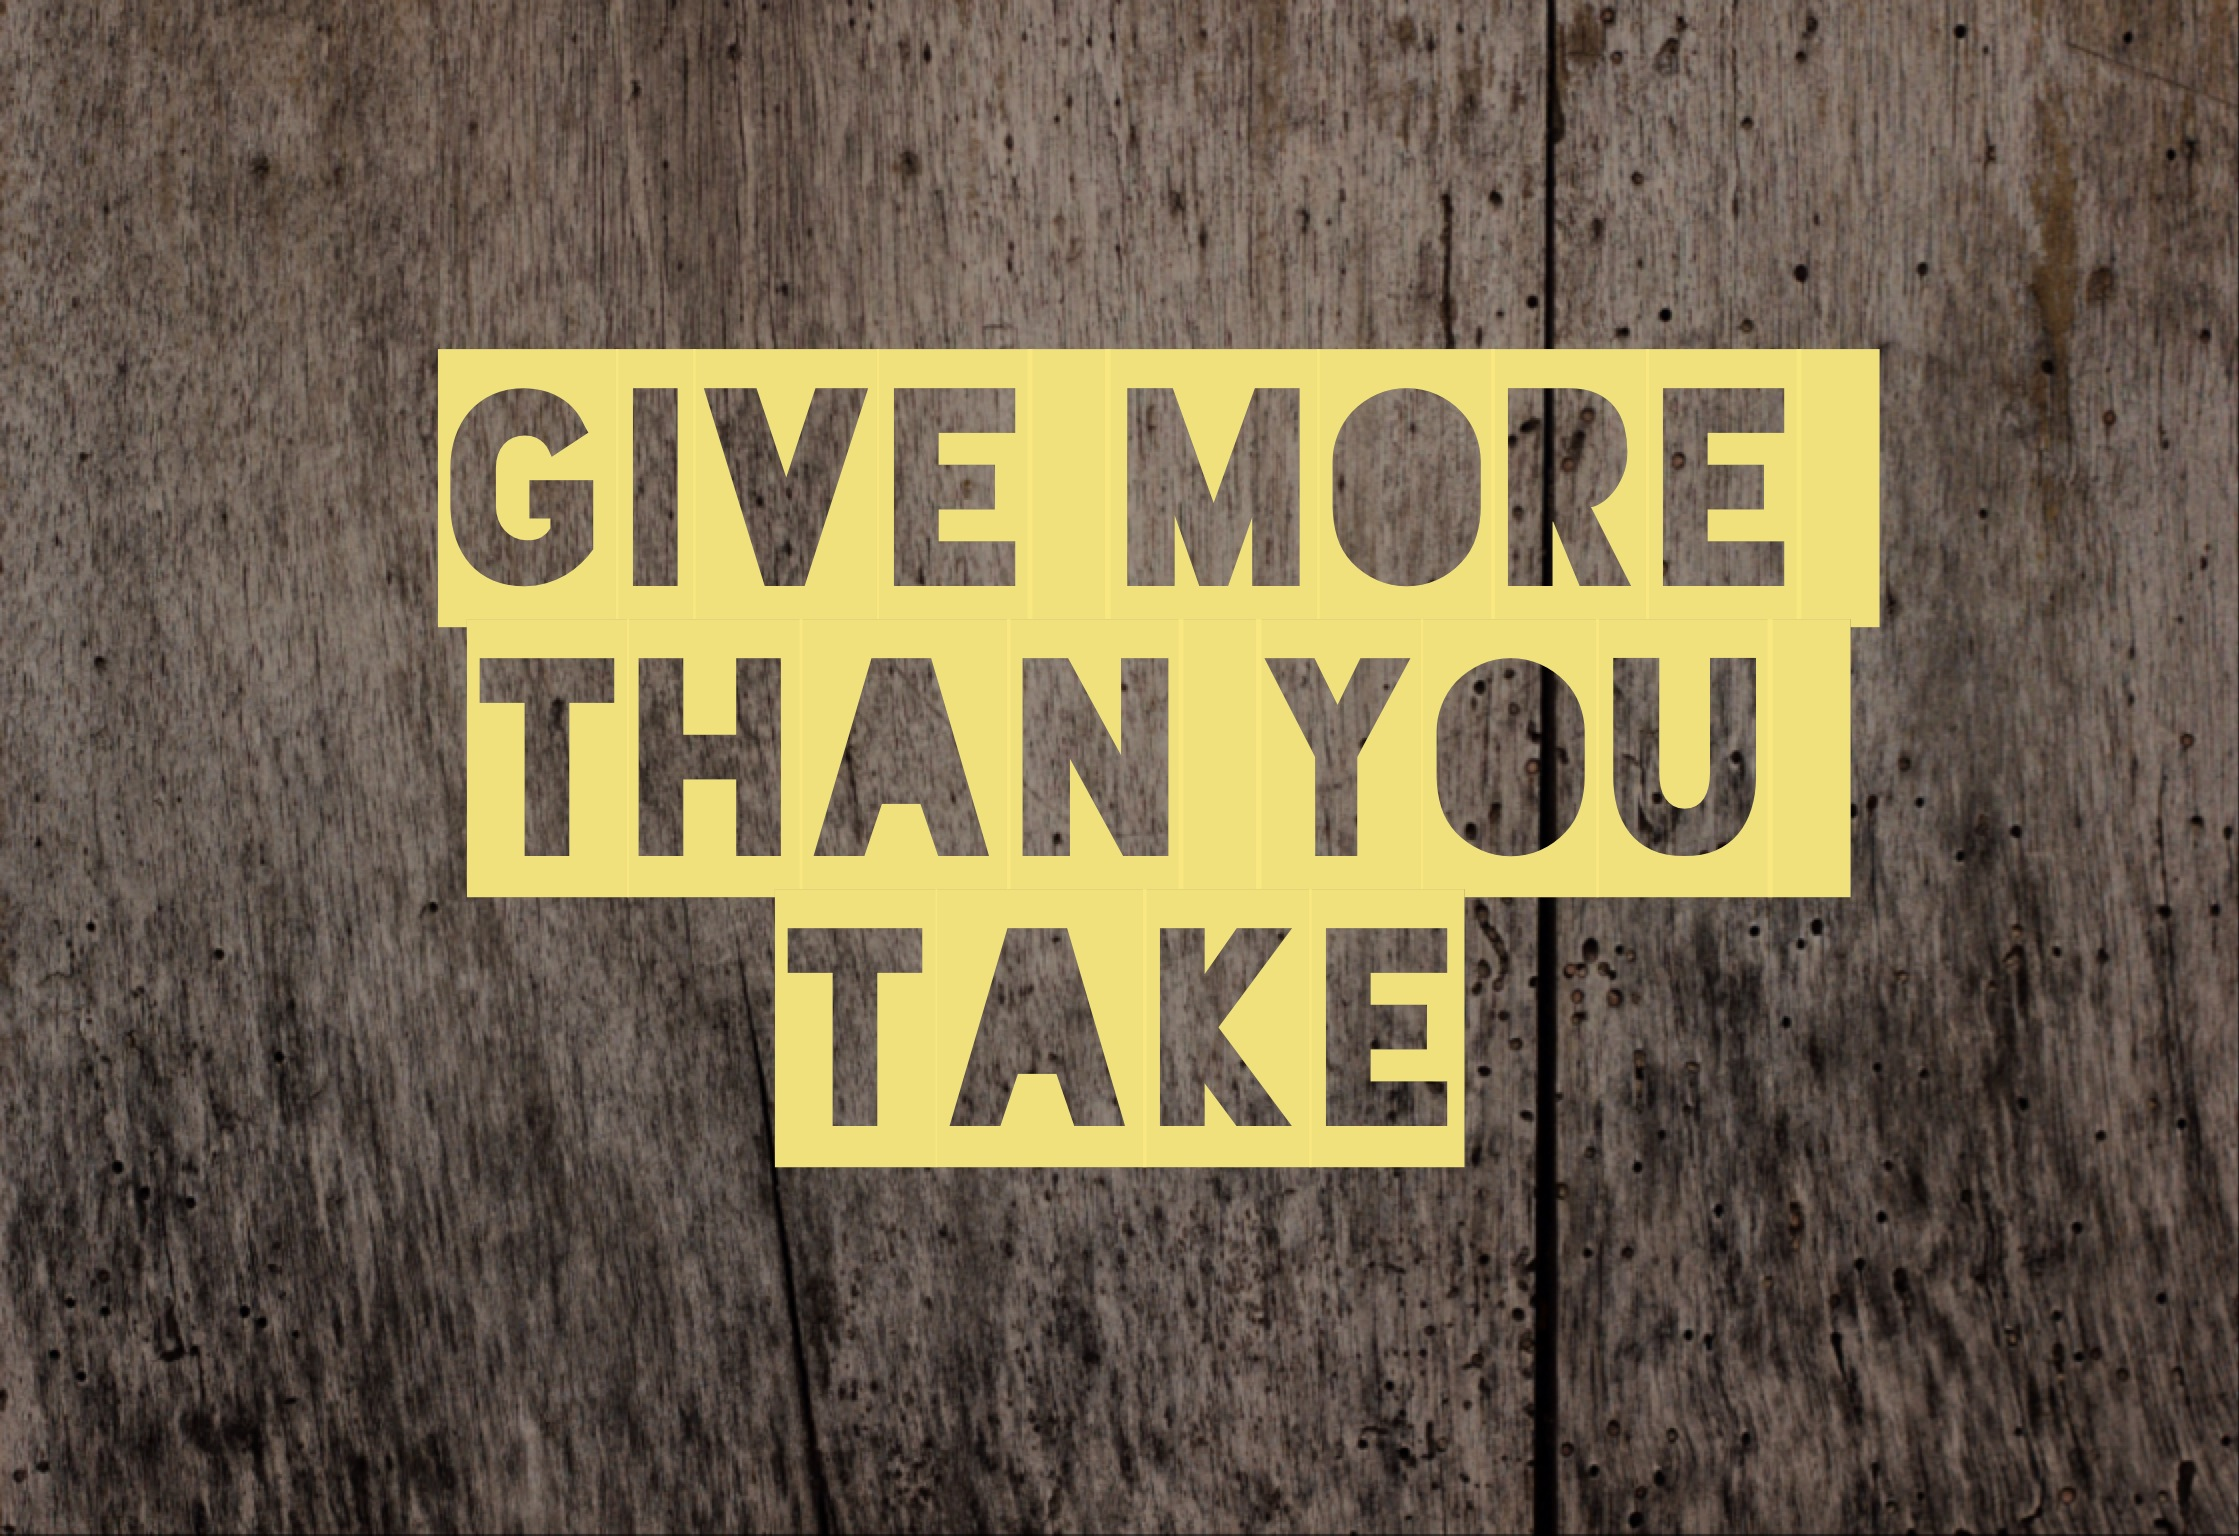 Give more than you take